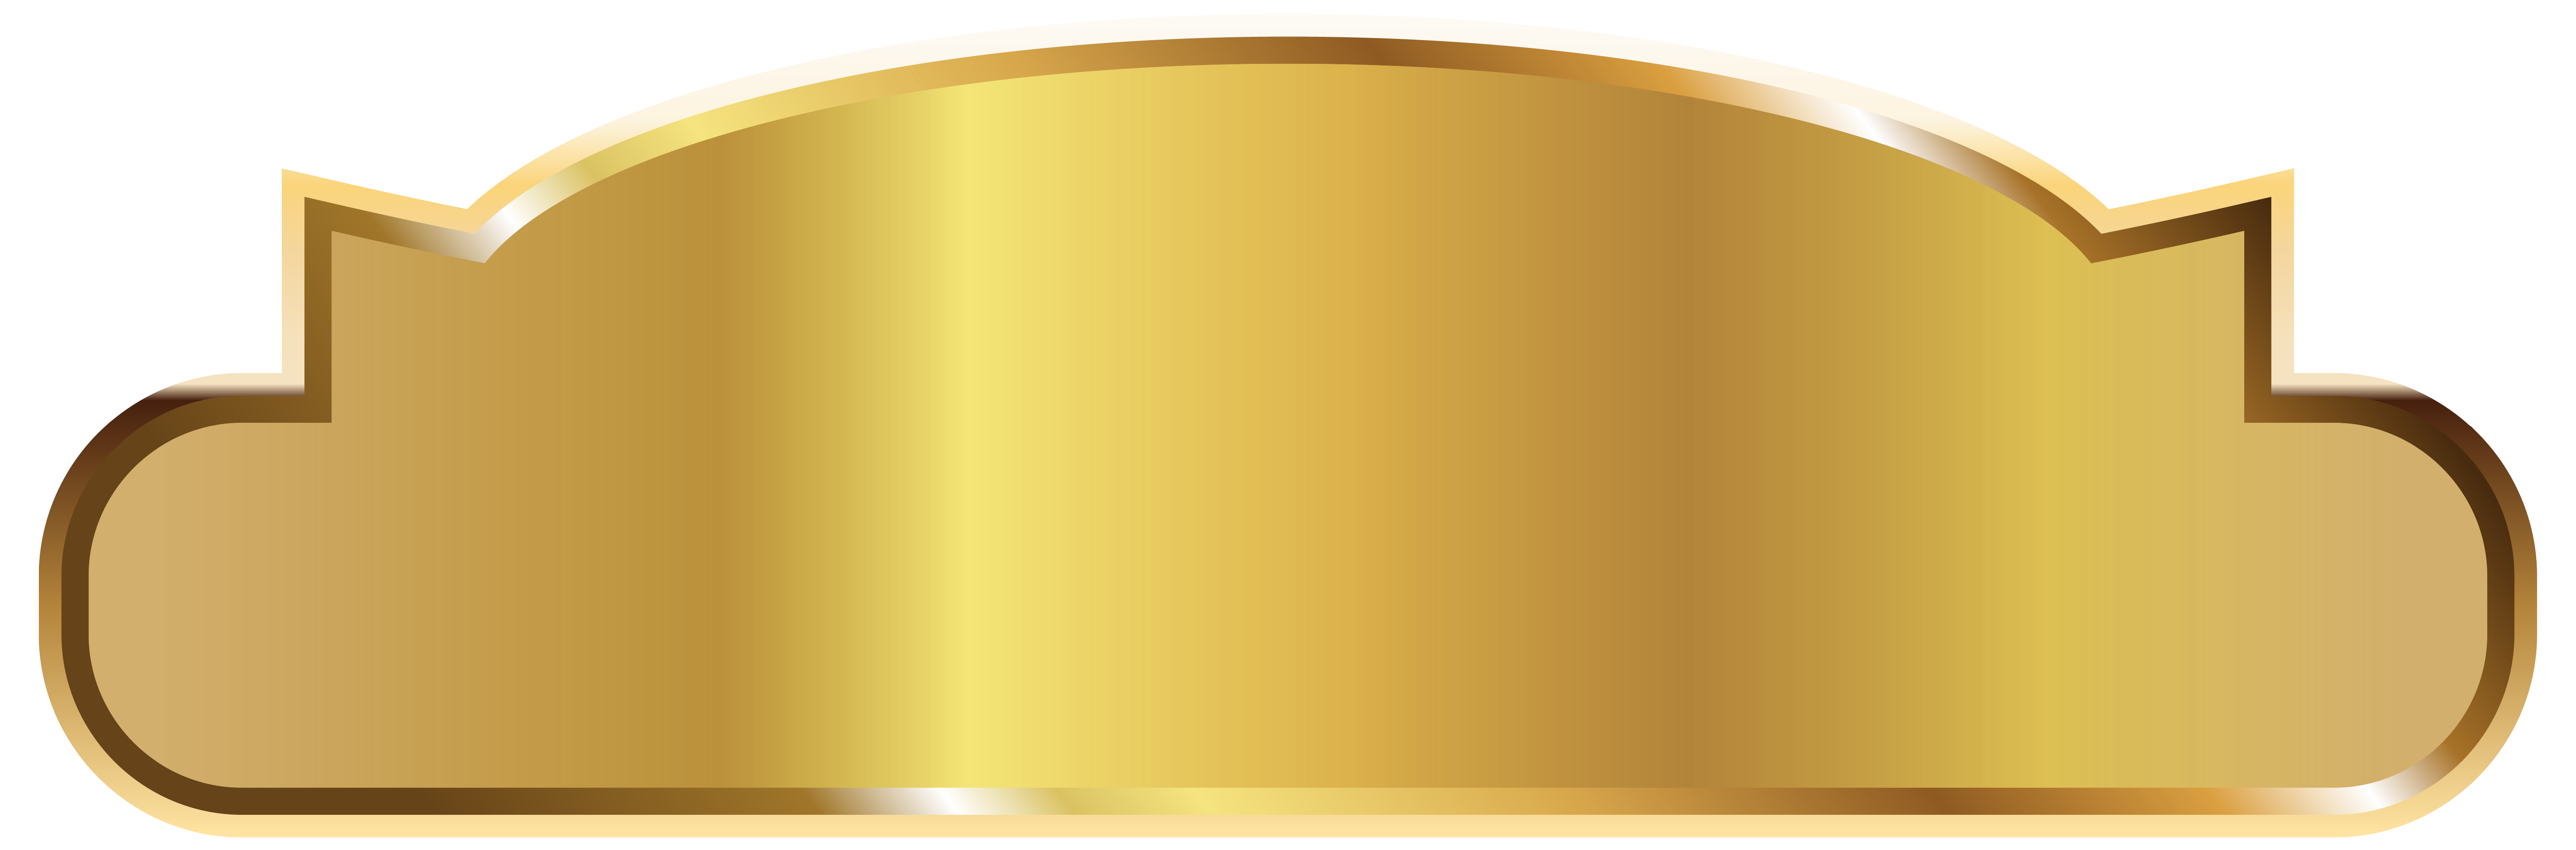 Gold clipart gold nugget. Png images free download